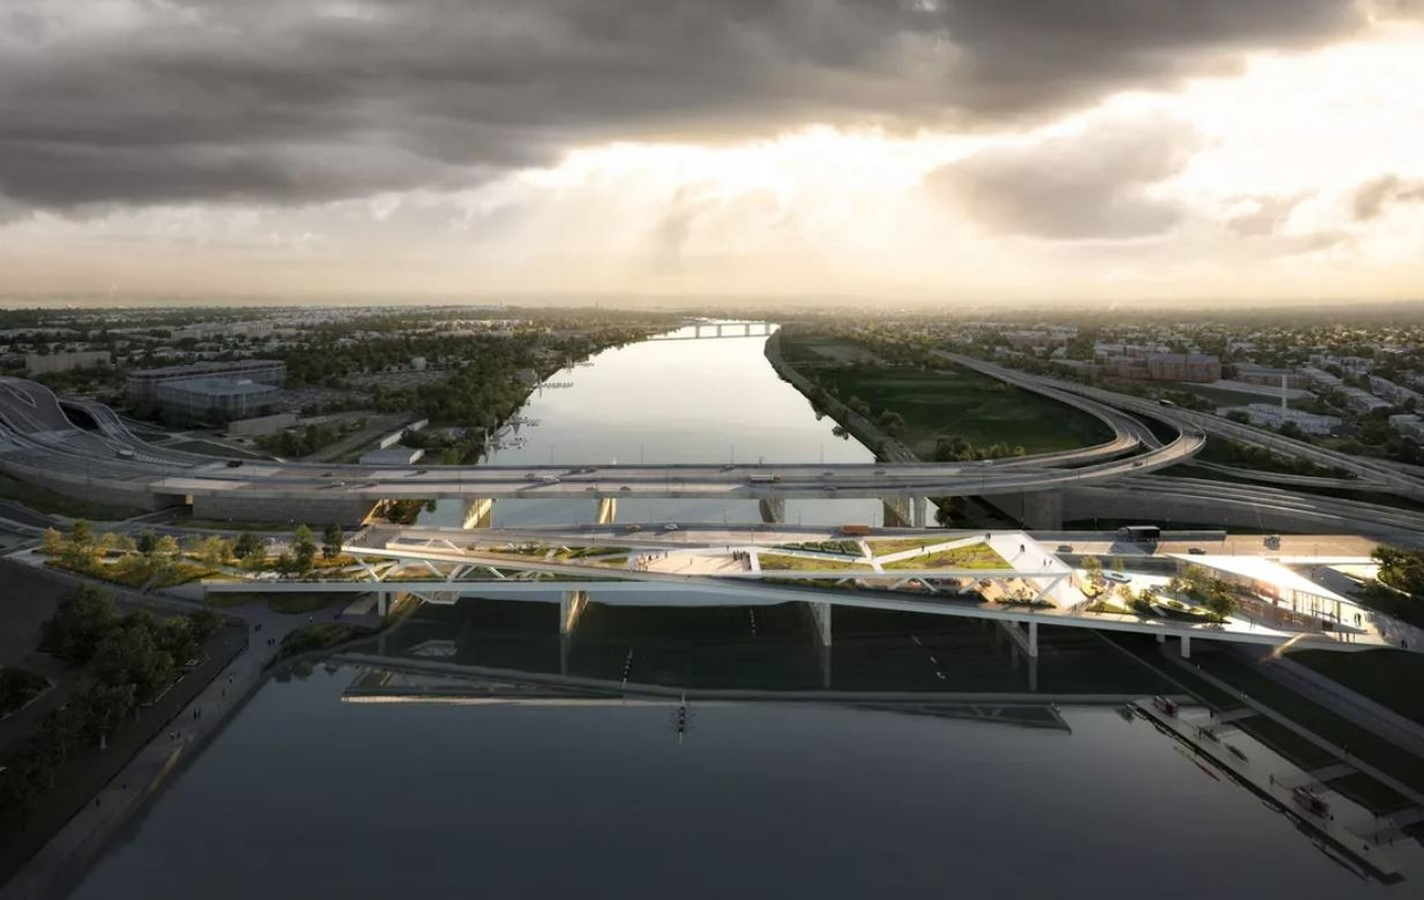 11th Street Bridge Park by Rem Koolhaas: Uniting the divided city - Sheet1